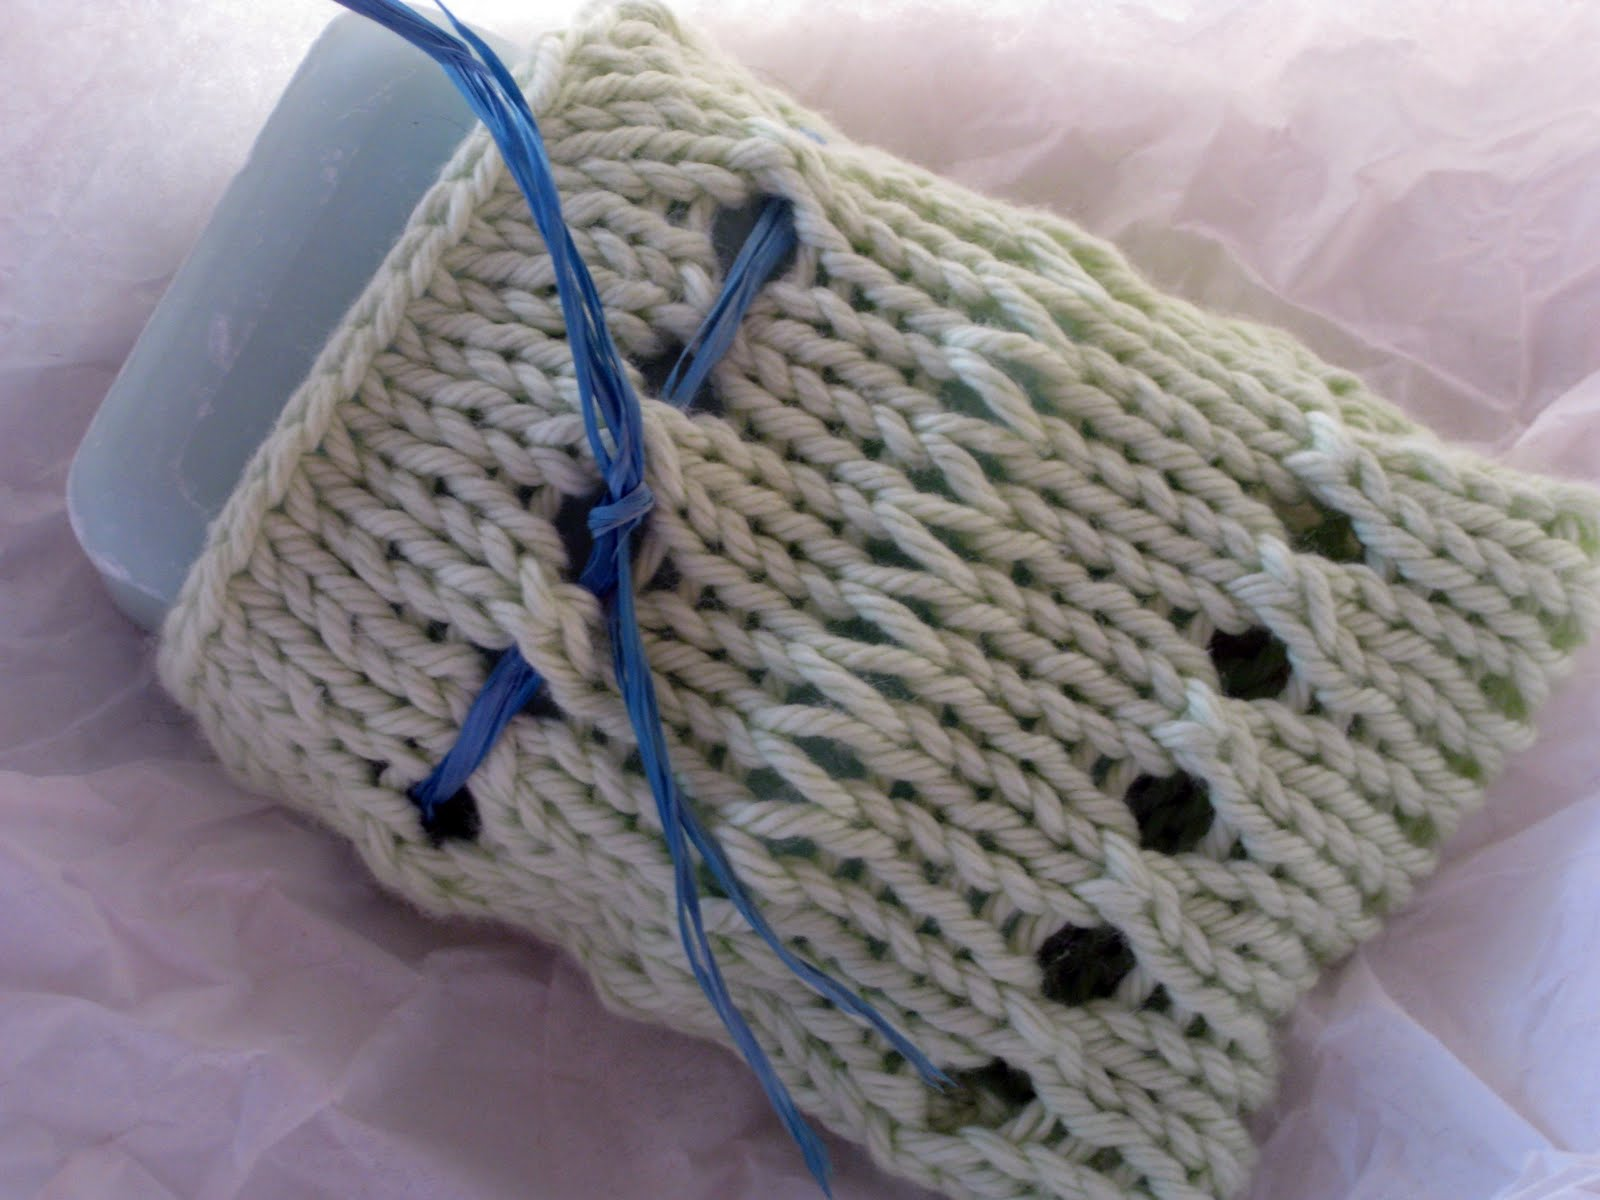 Free Crochet Pattern Soap Bag : golden bird knits: Soap Bag Knitting Pattern